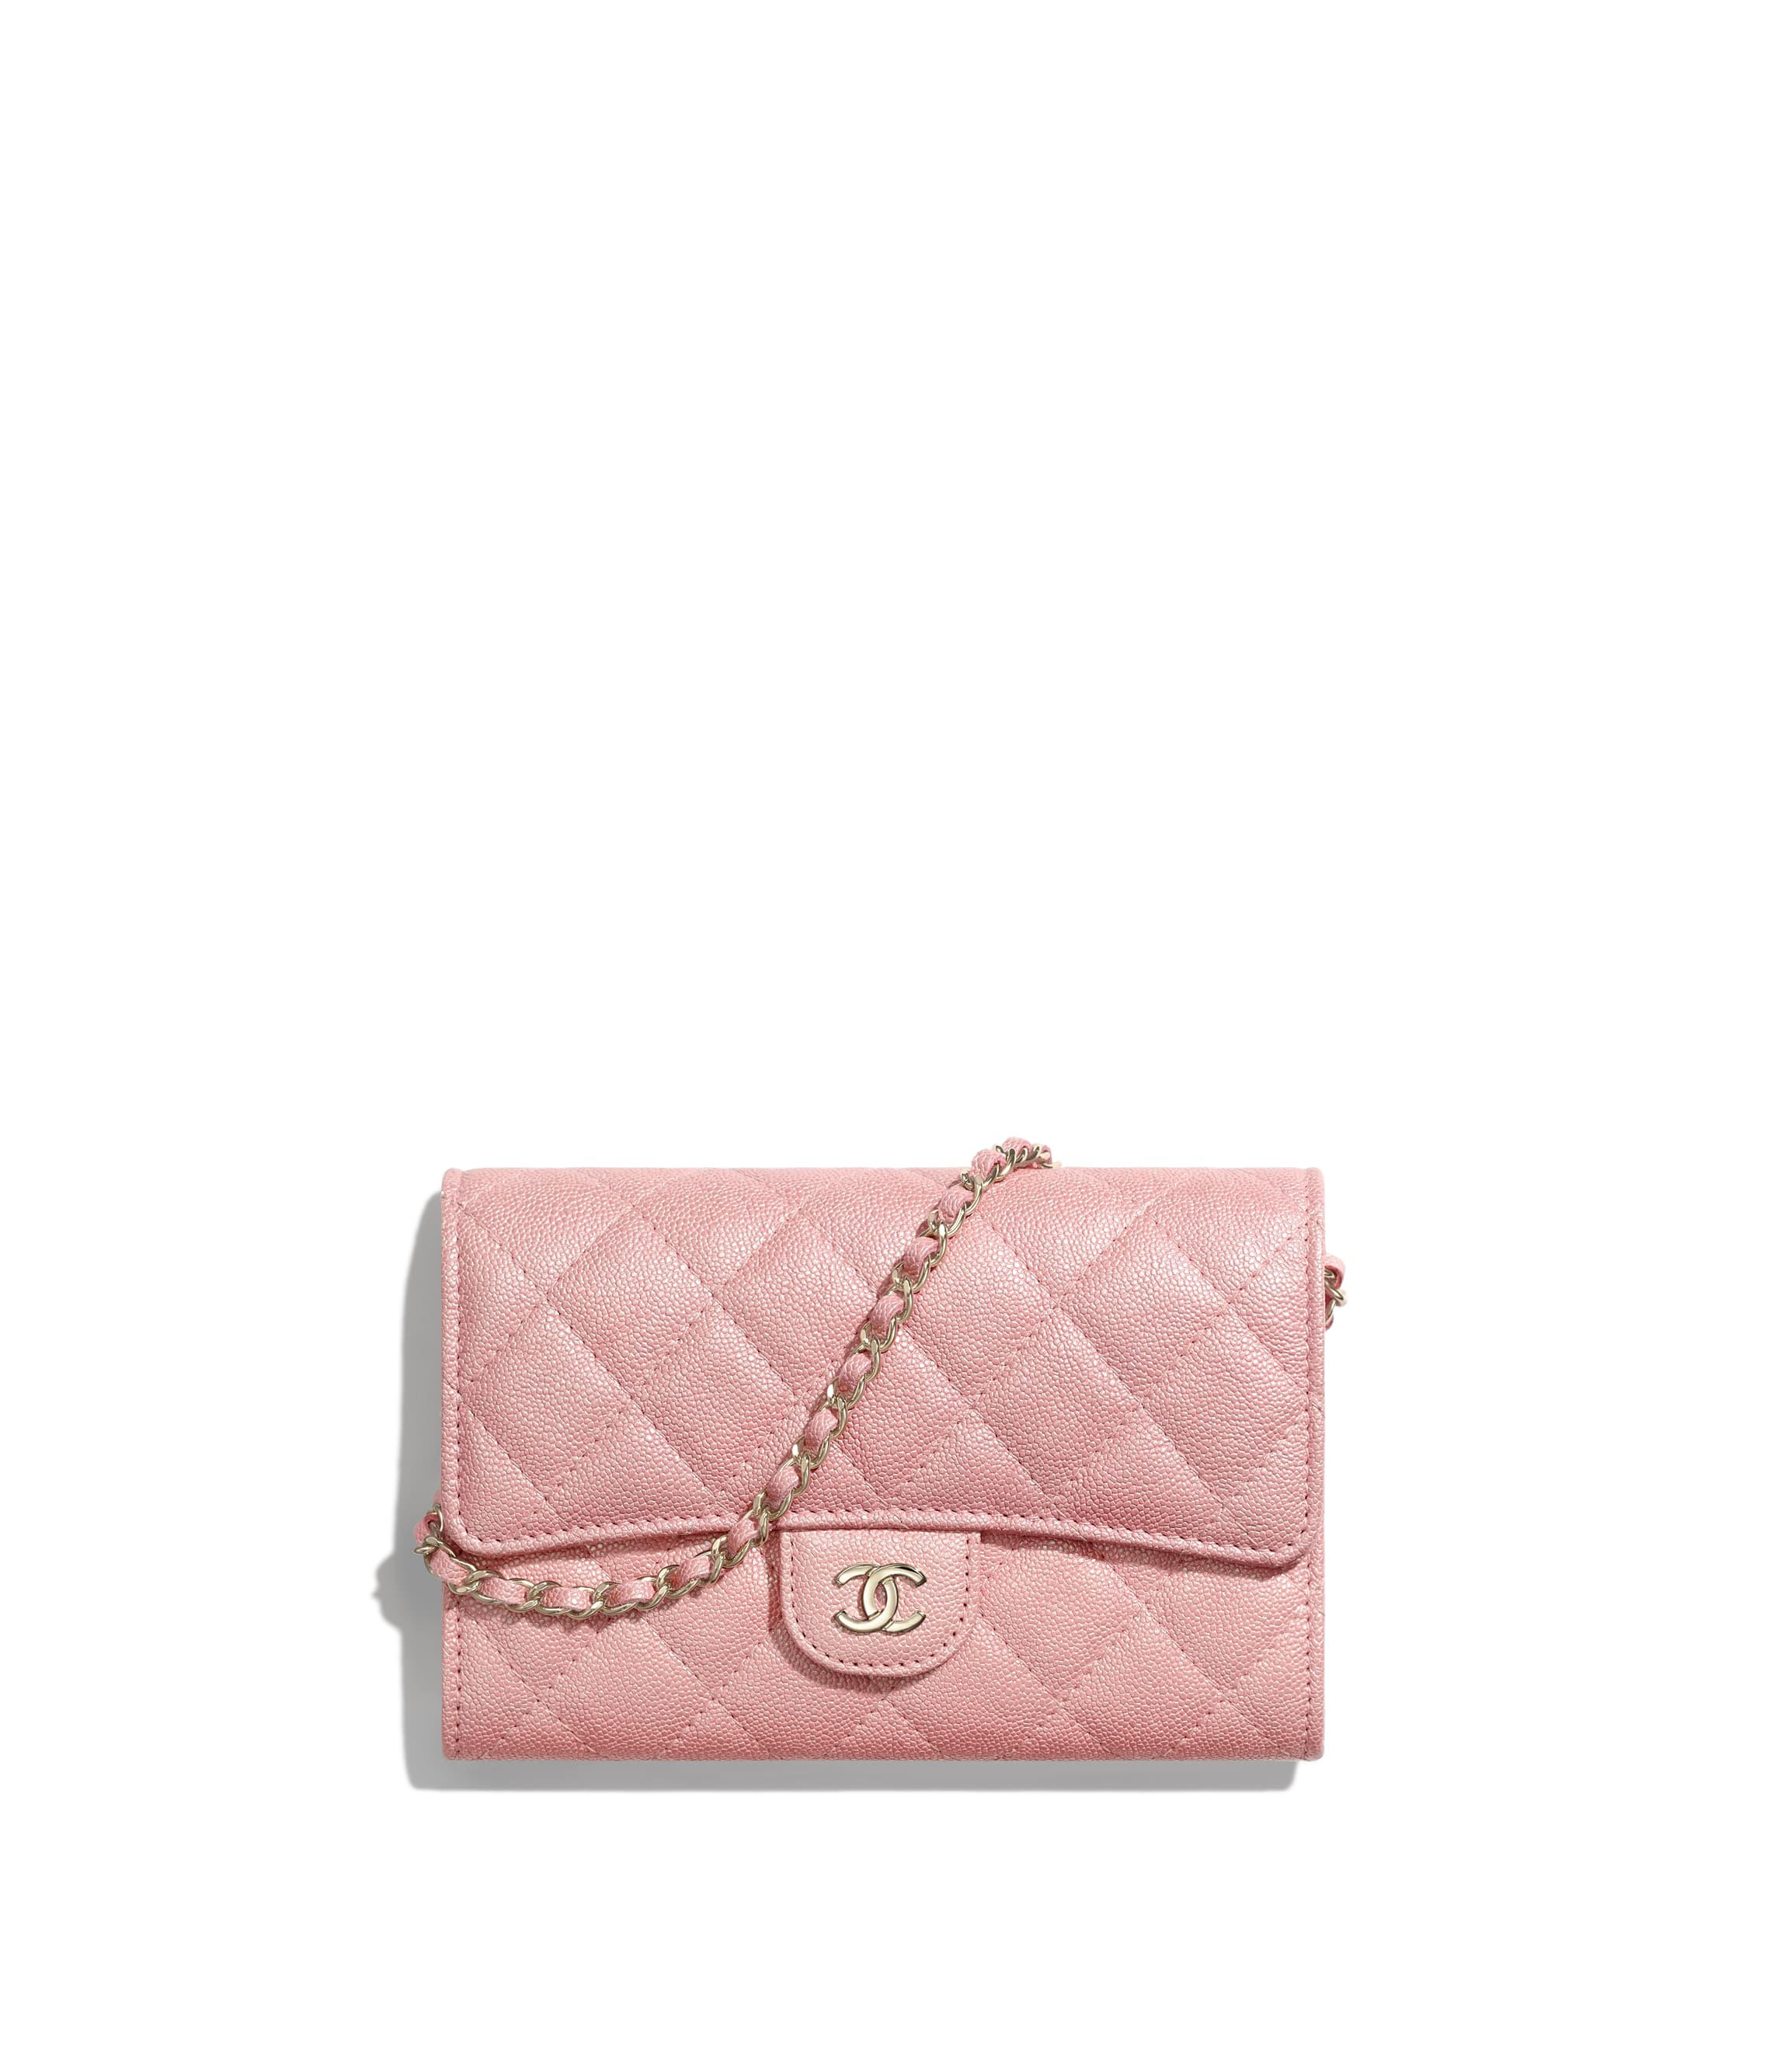 5b337838 Classic Clutch with Chain, iridescent grained calfskin & gold-tone ...